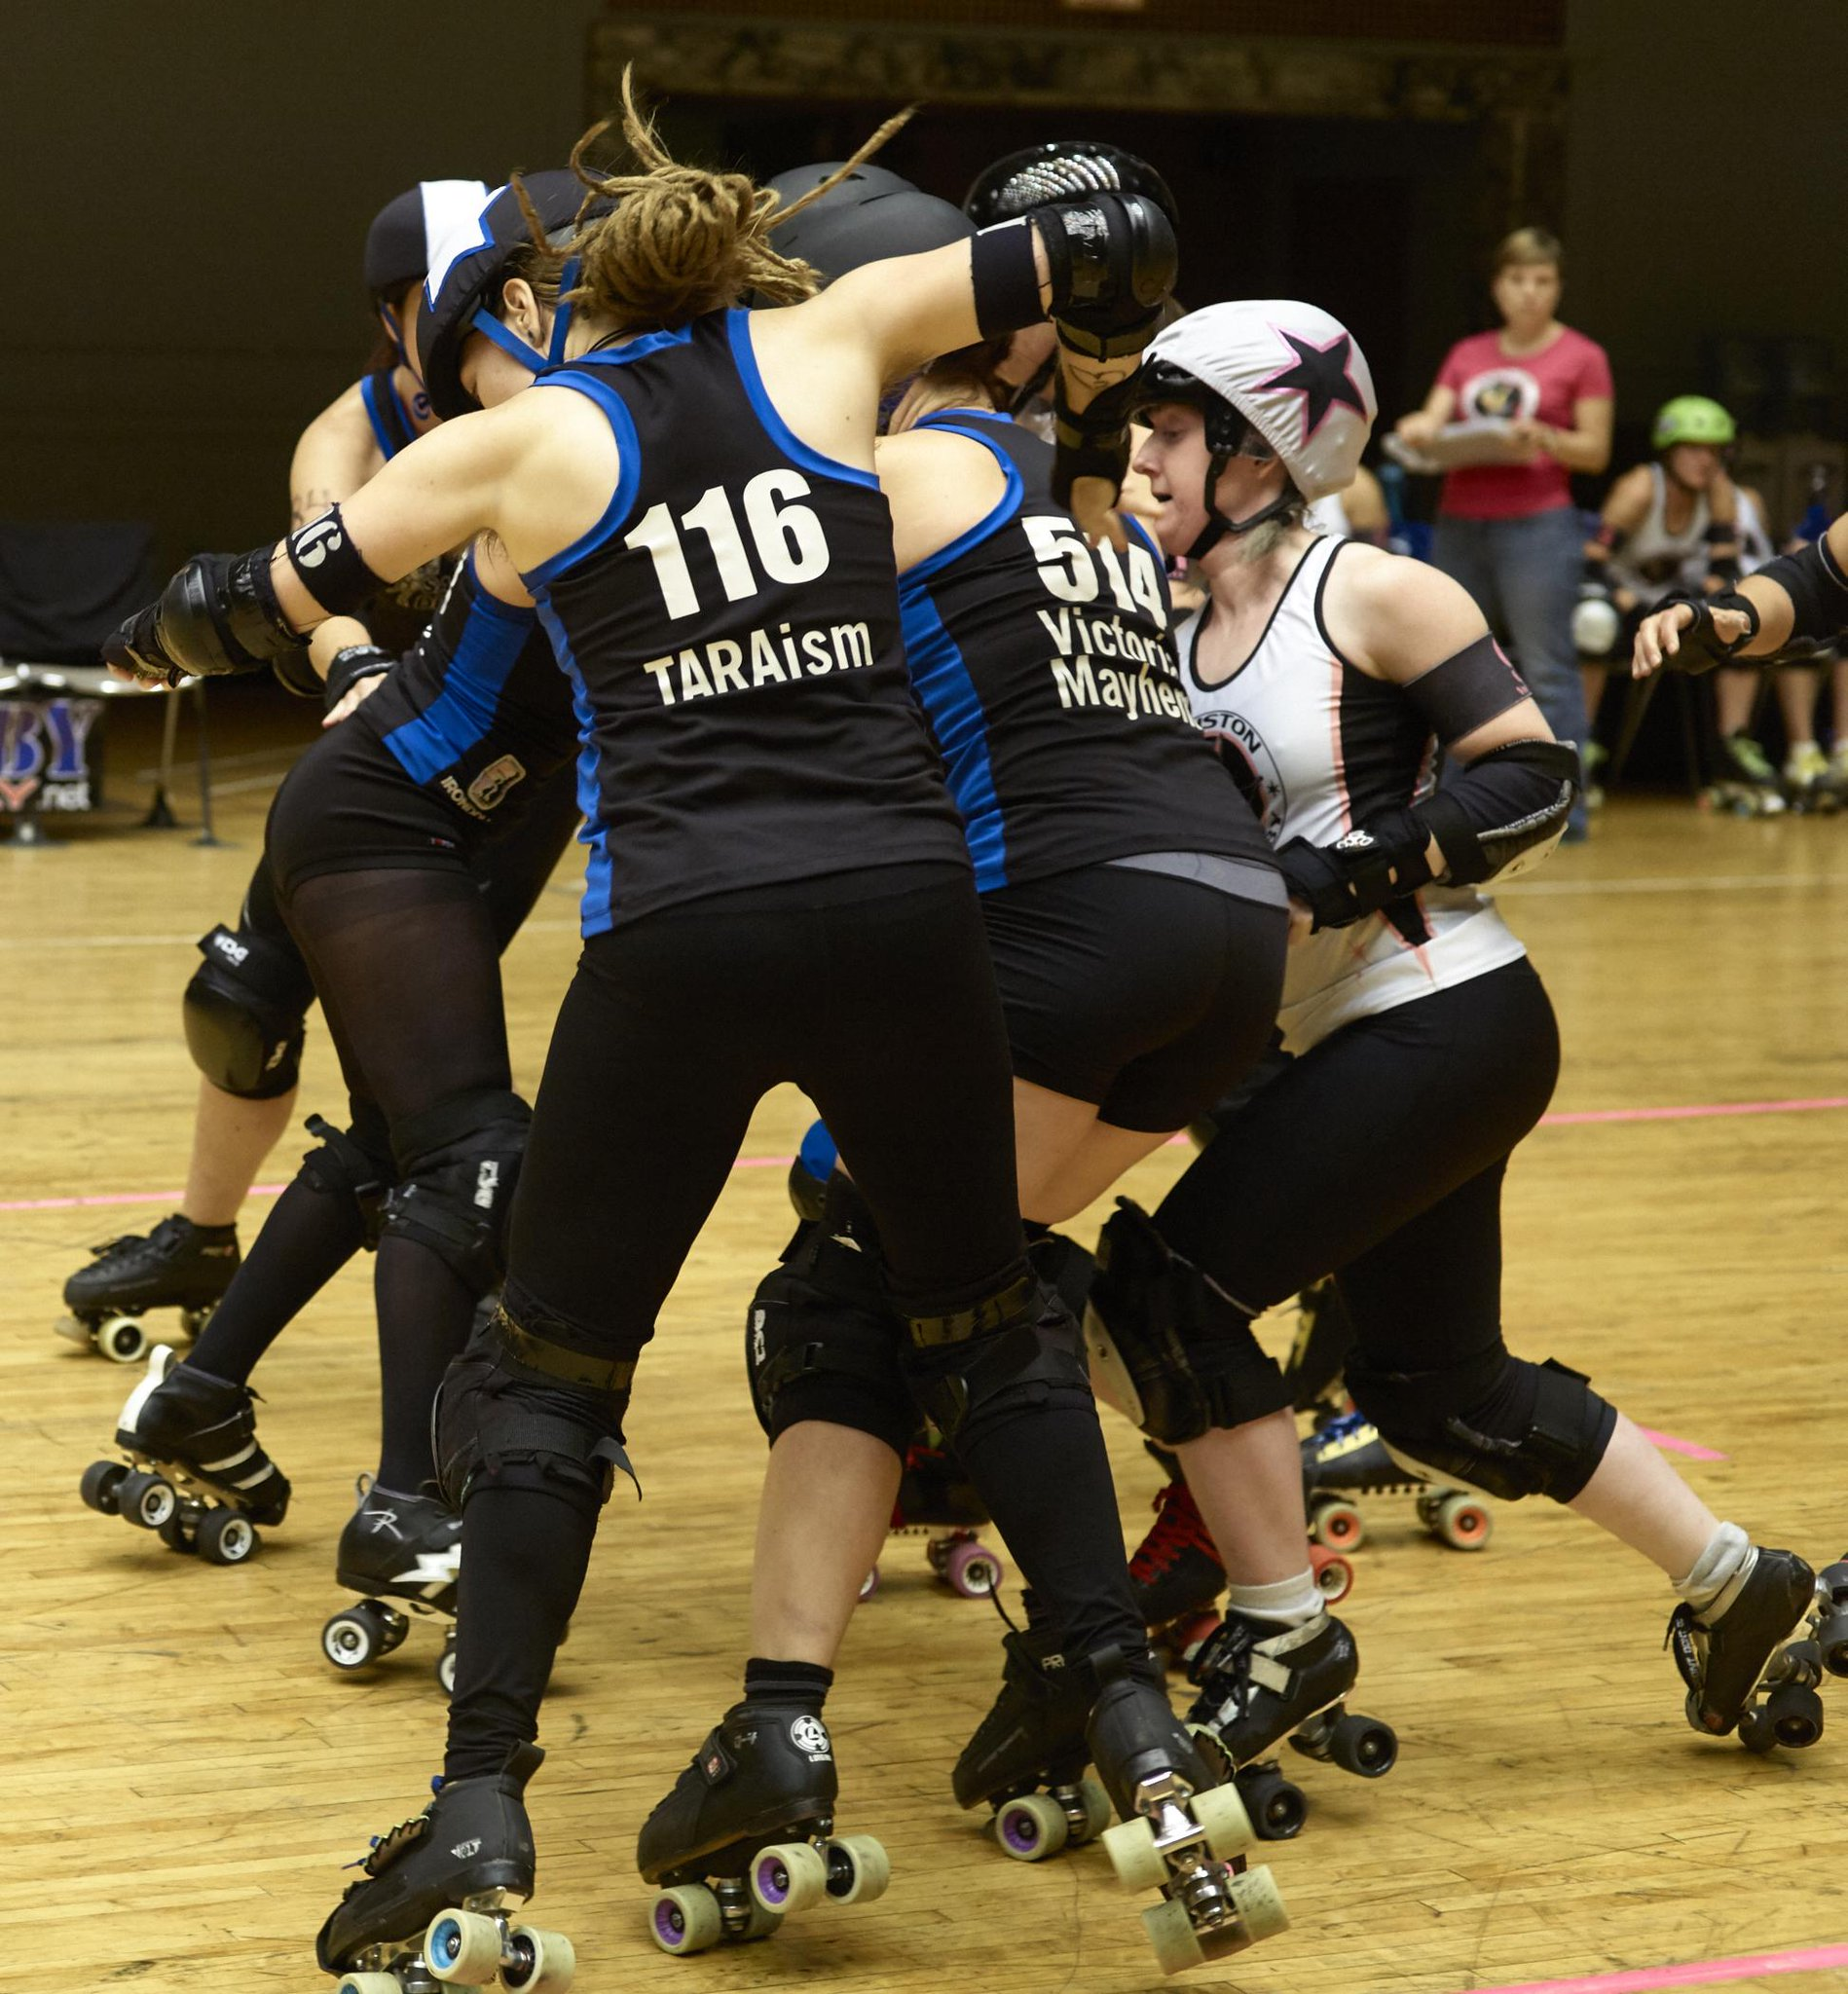 @SCderbygirls take third place in the Cleveland bracket of the @WFTDA D-II playoffs over Houston, 154 – 141. #scscore http://t.co/mq2eI4dclx